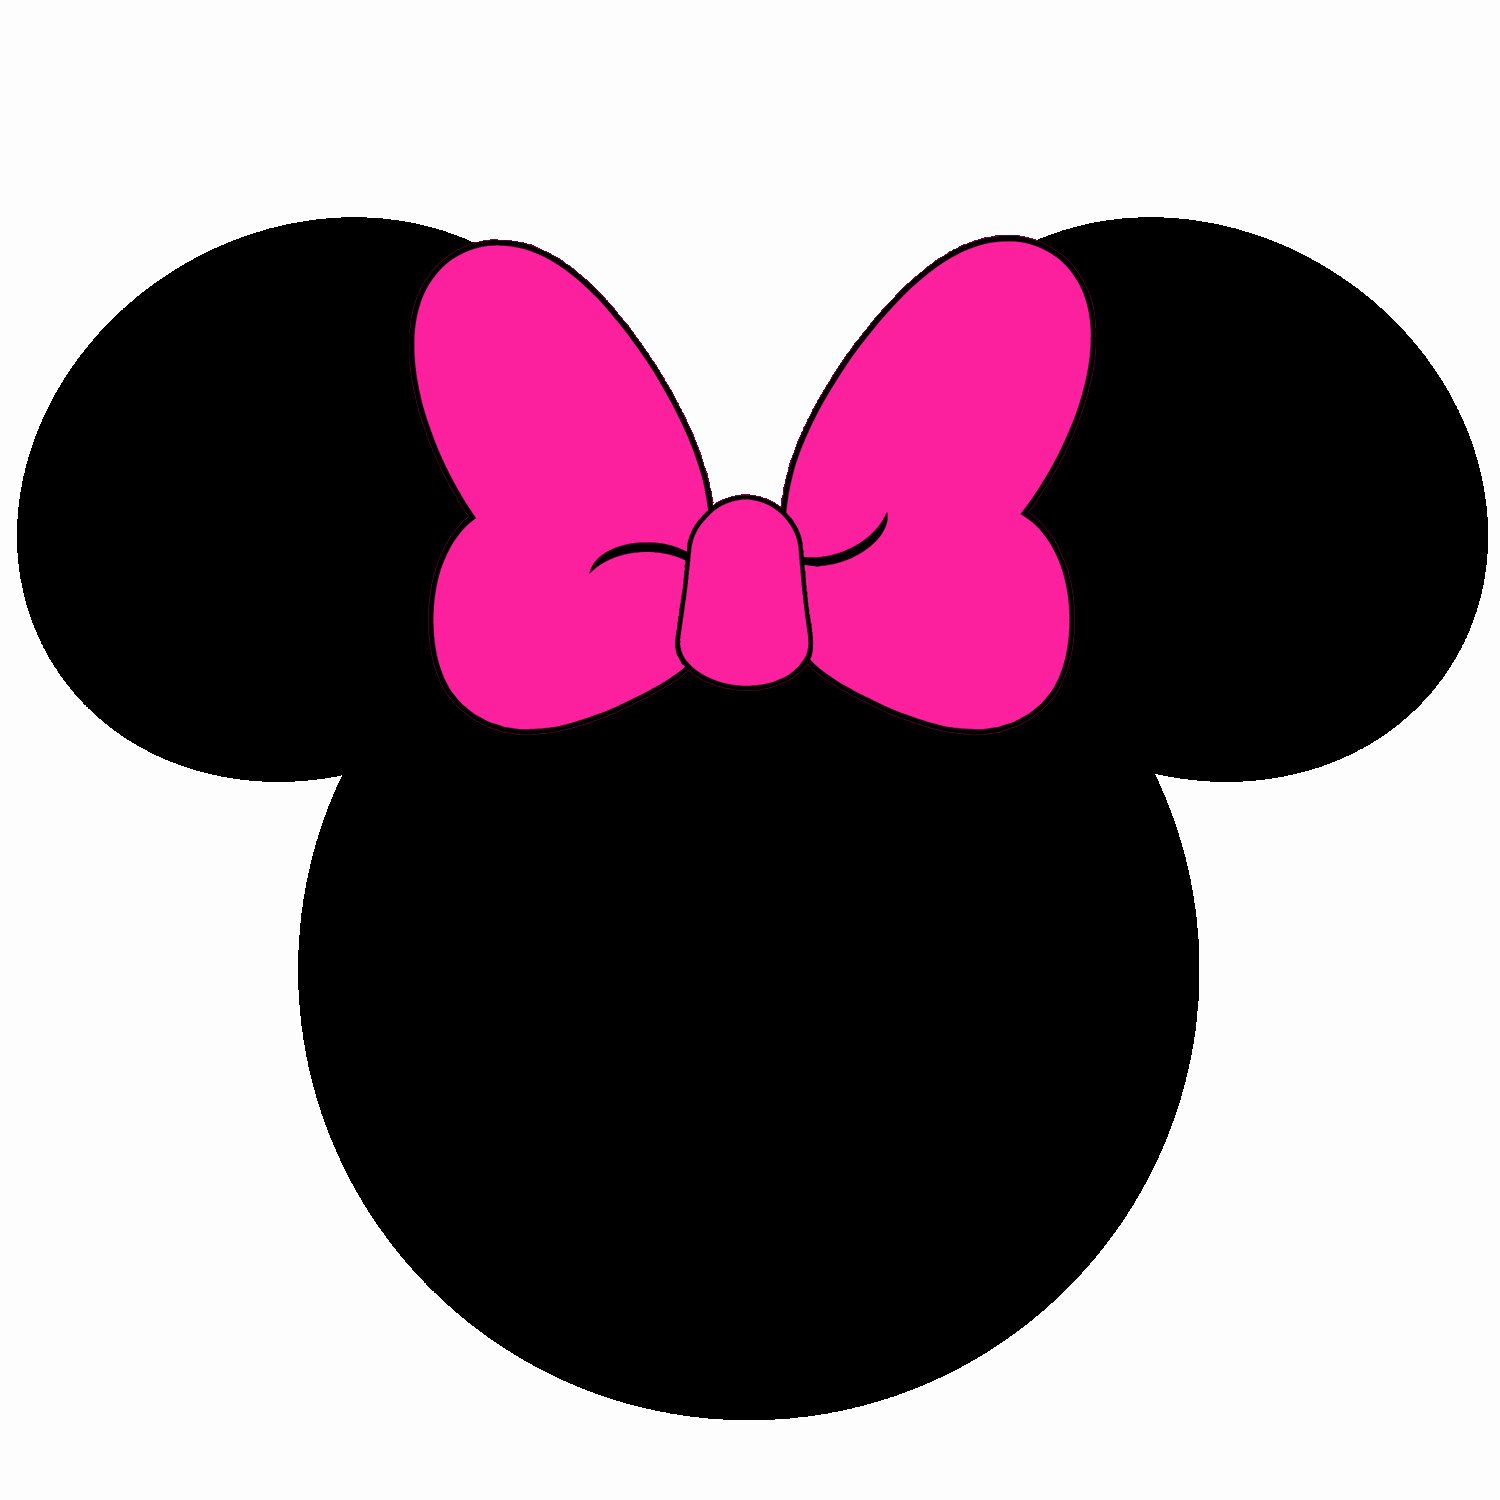 Minnie Mouse Head Silhouette Printable Awesome Minnie Mouse Head Silhouette at Getdrawings